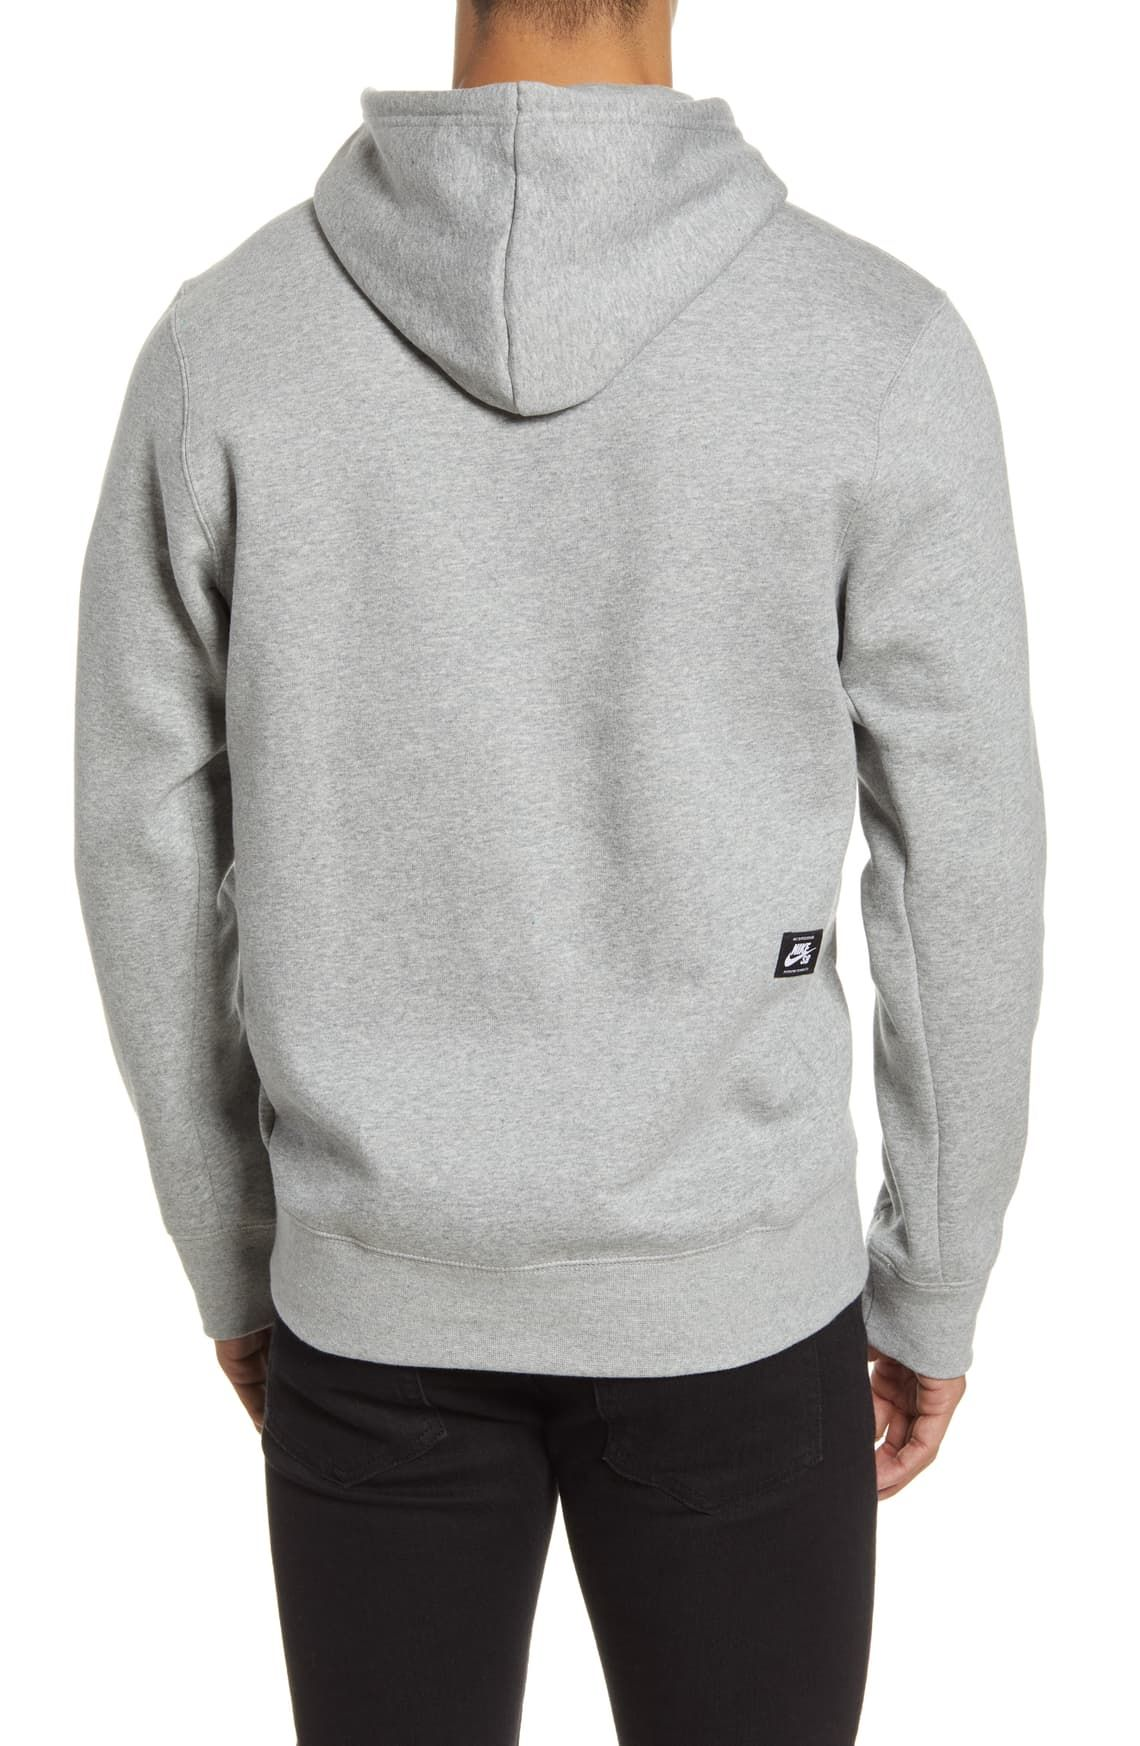 Nike Sb Triangle Graphic Hoodie Nordstrom Graphic Hoodies Hoodies Hoodie Fashion [ 1746 x 1140 Pixel ]